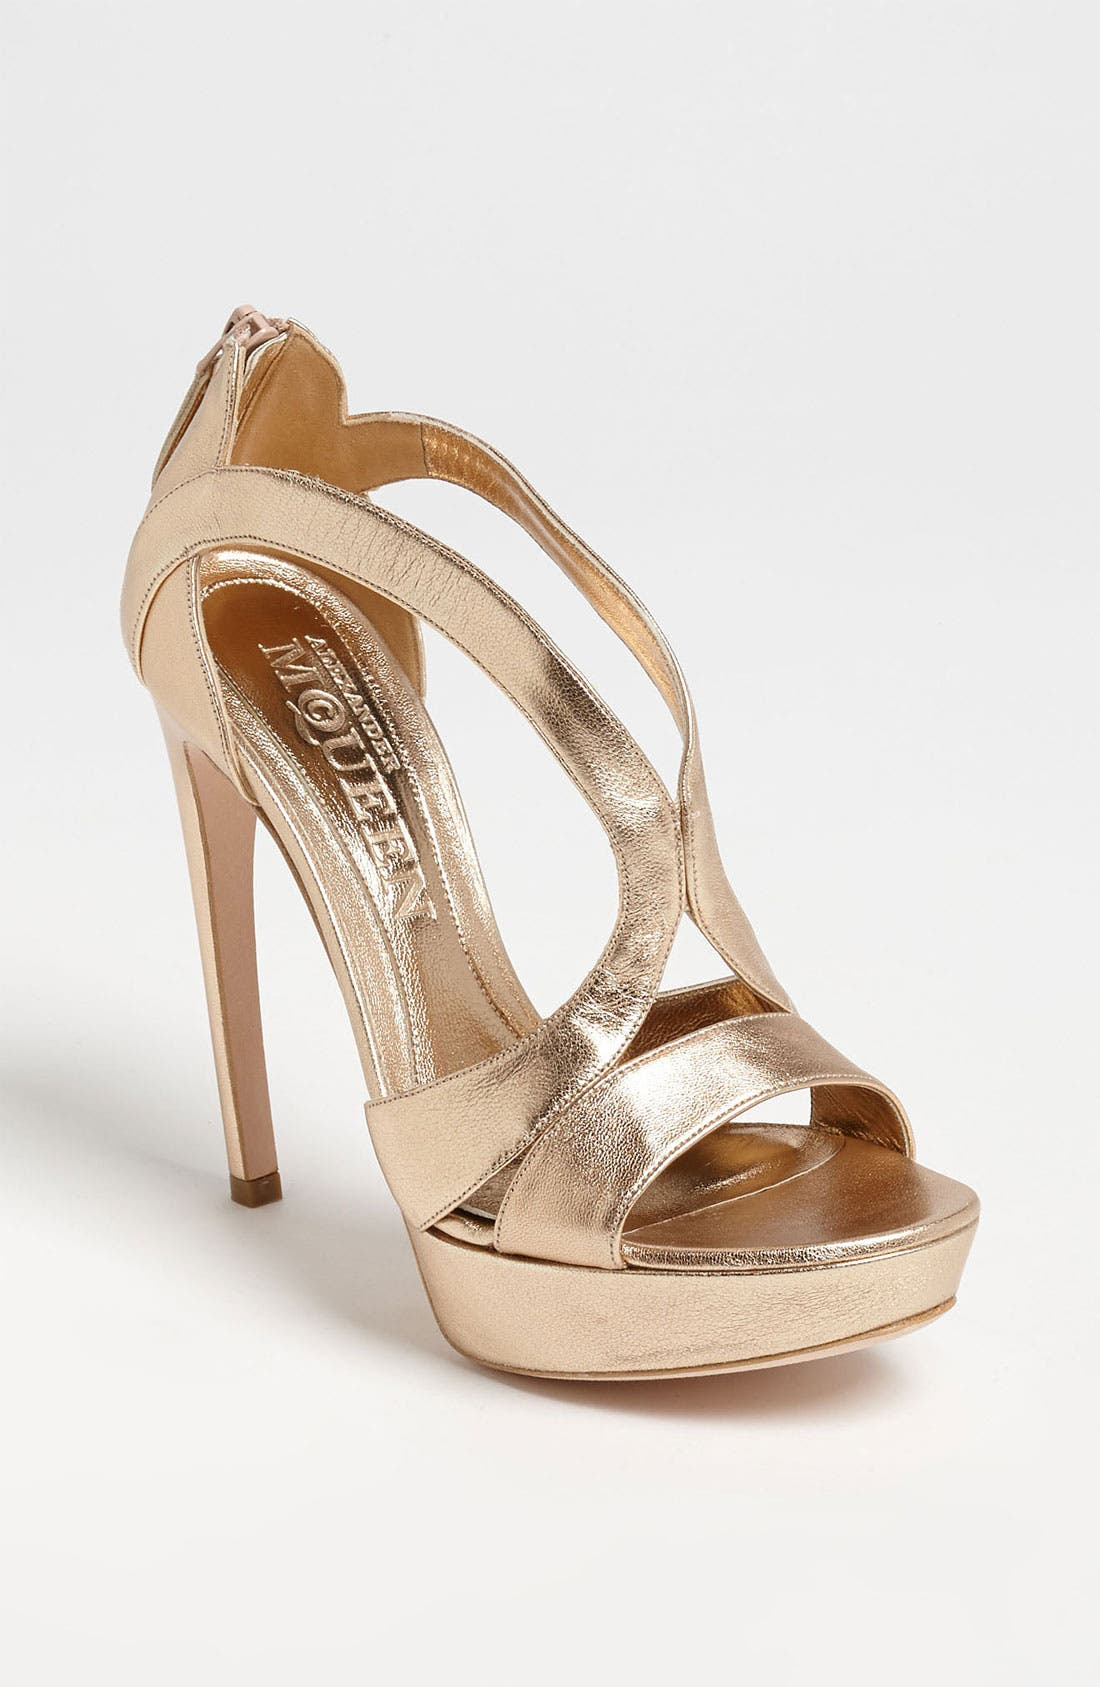 Alternate Image 1 Selected - Alexander McQueen Cutout Sandal